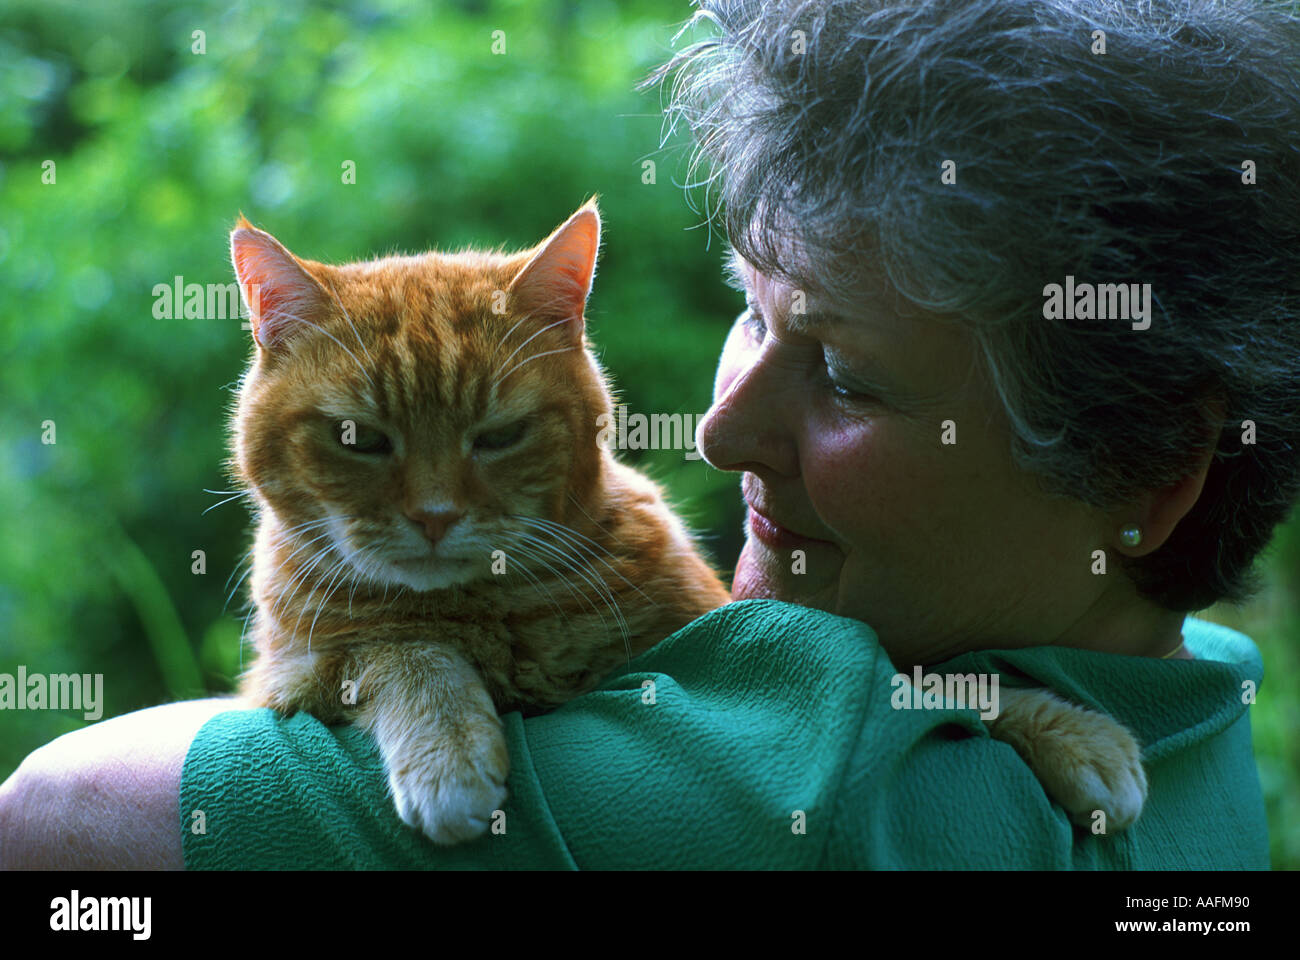 woman holding a ginger cat - Stock Image